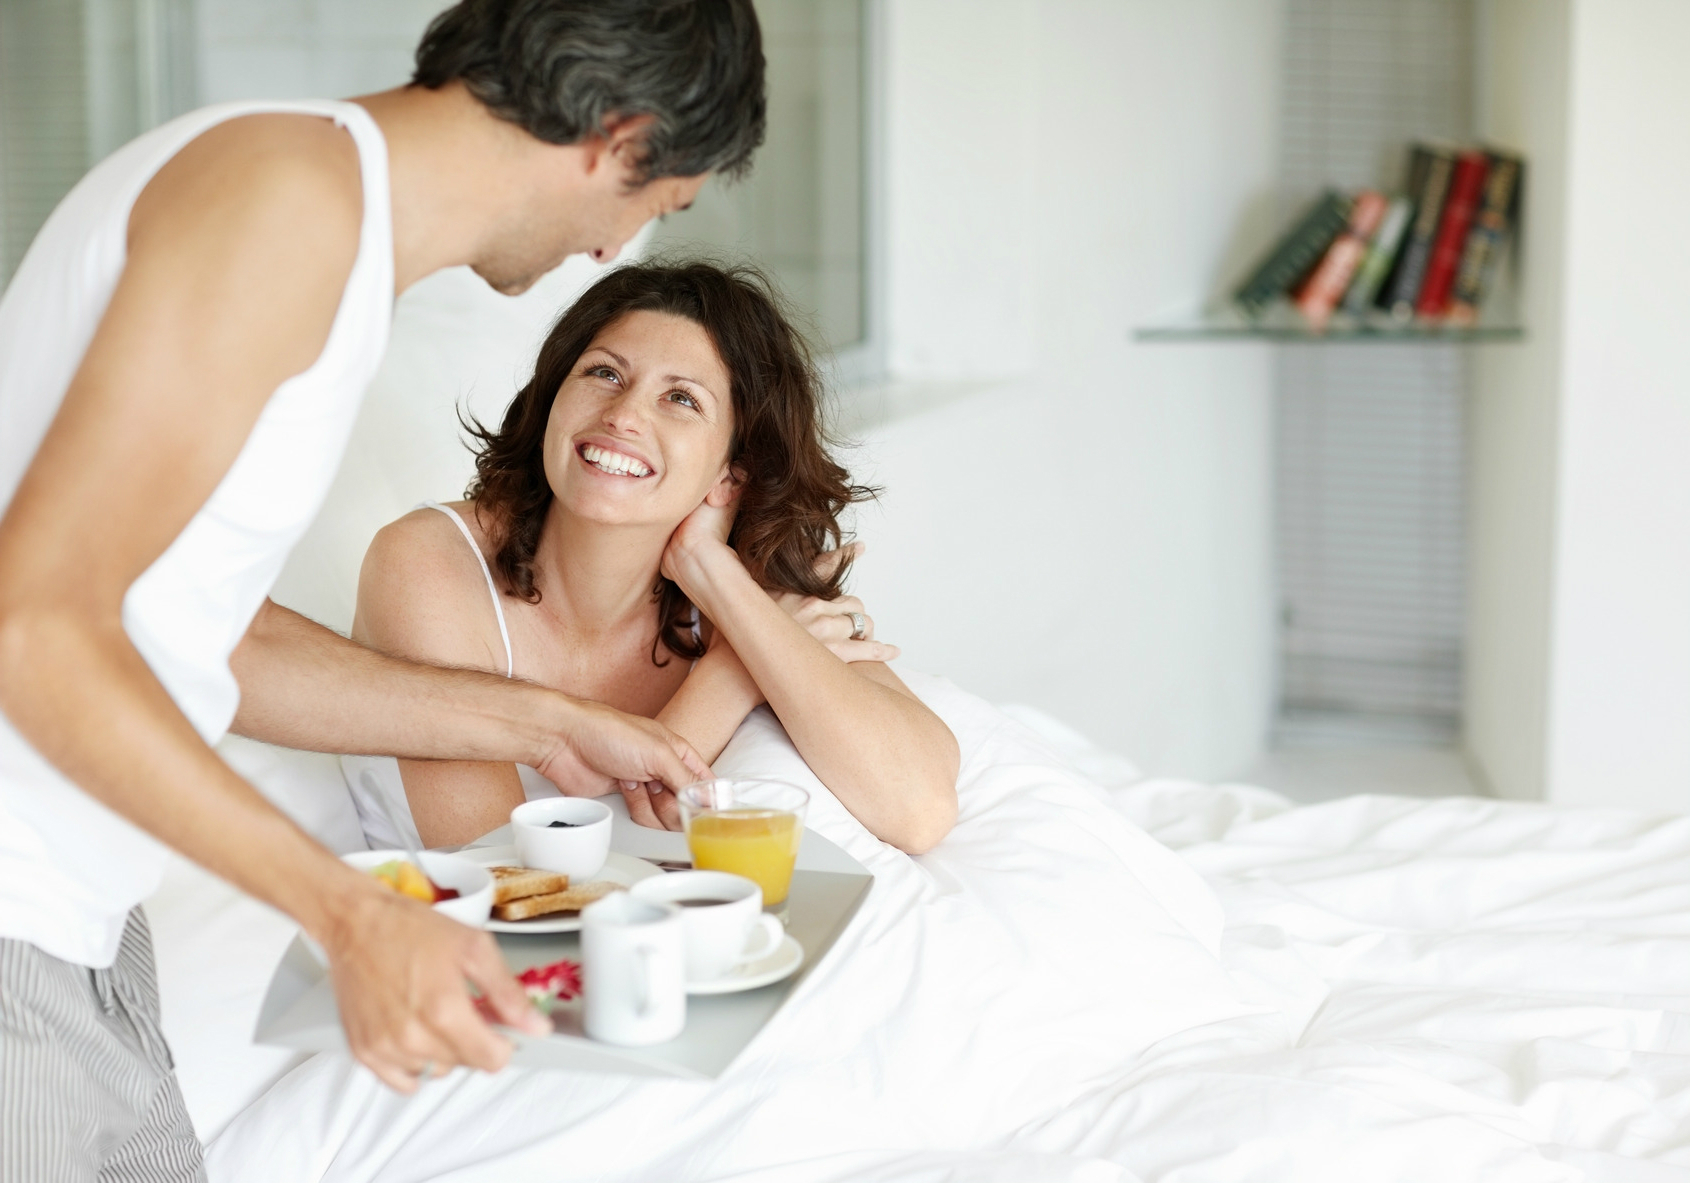 mature-man-serving-breakfast-for-his-wife-in-bed-at-home.JPG